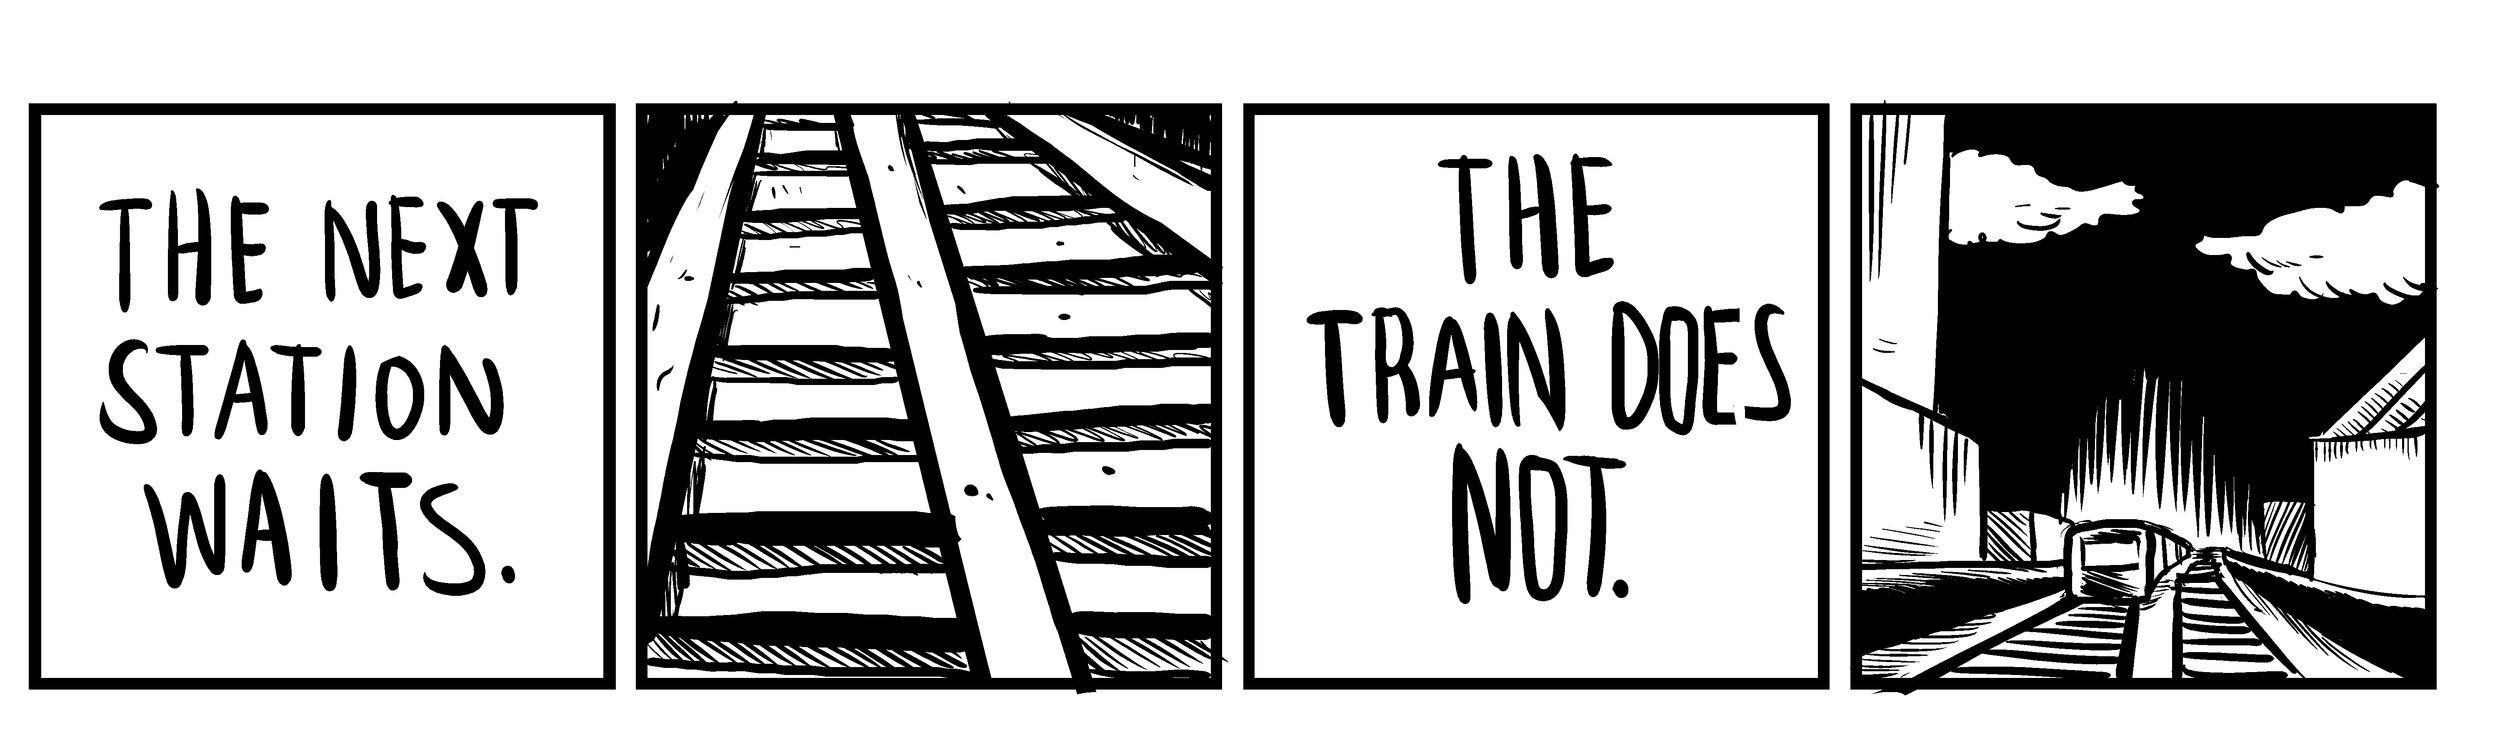 taking the train 16.png